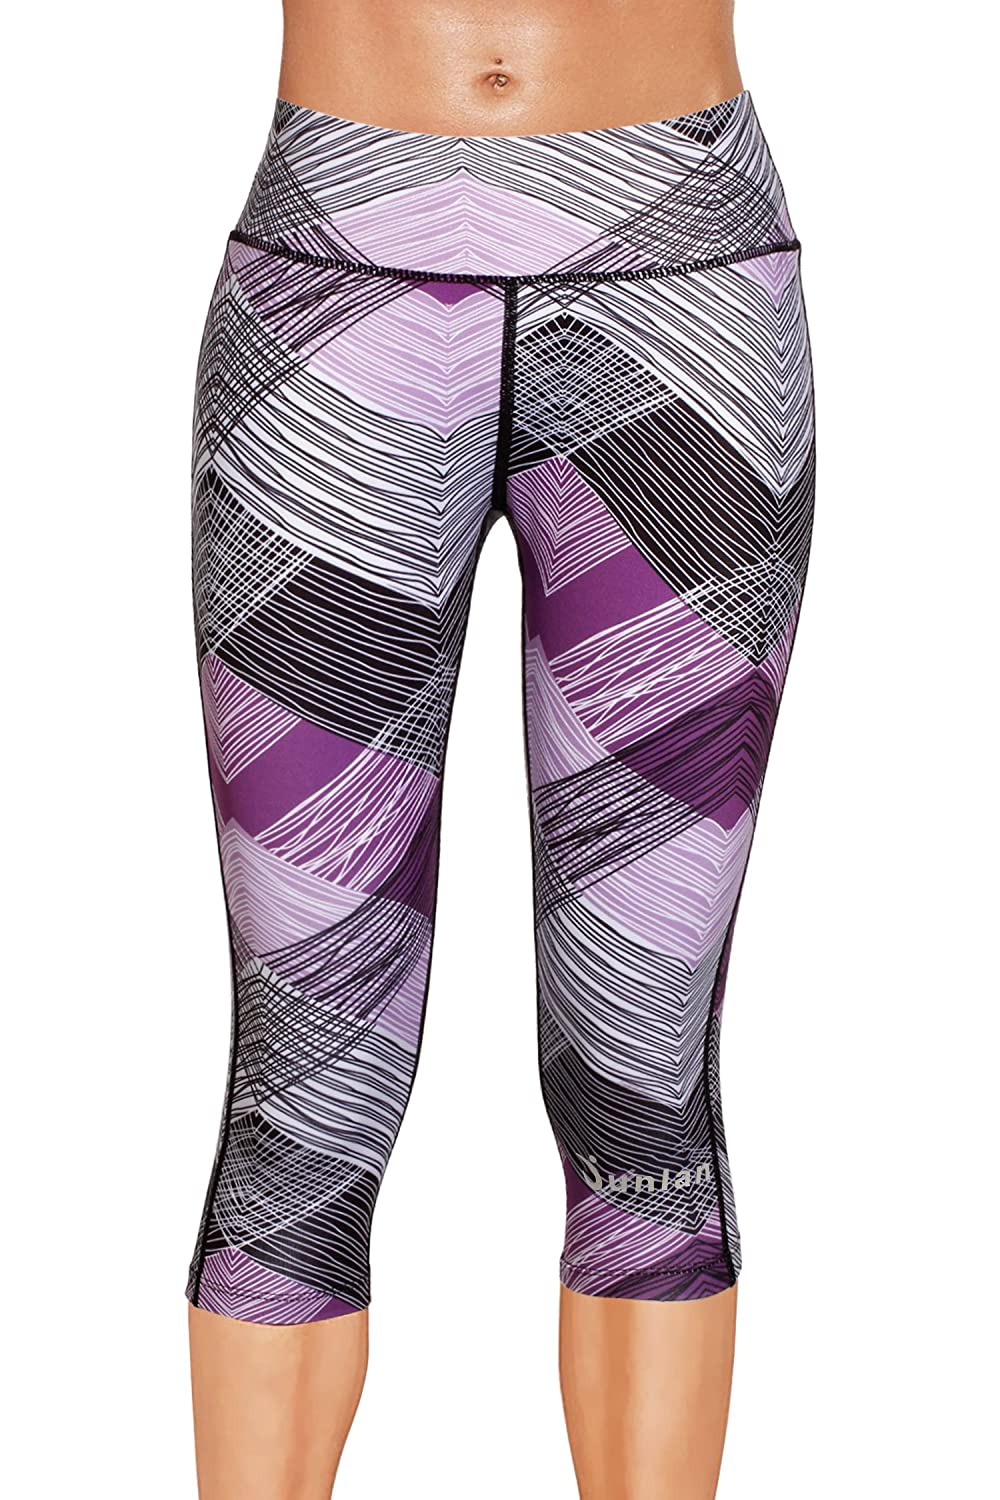 8b3970a271f9c2 Power Flex Yoga Capri for women are made from the highest quality fabrics  designed to remove moisture from your body, providing maximum comfort.